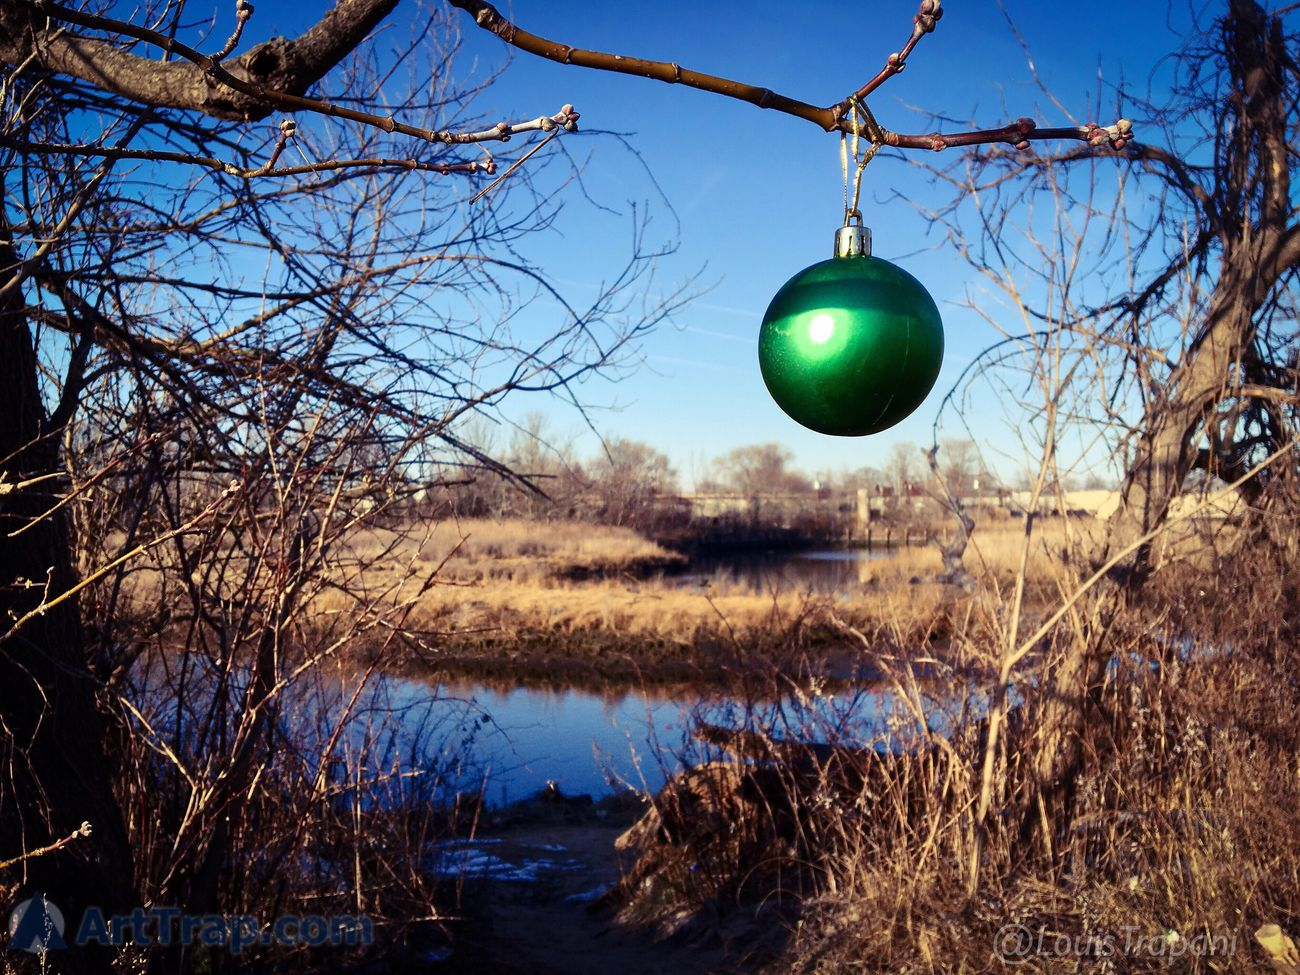 A little leftover holiday cheer discovered on my walk today. IPhoneography Ornaments